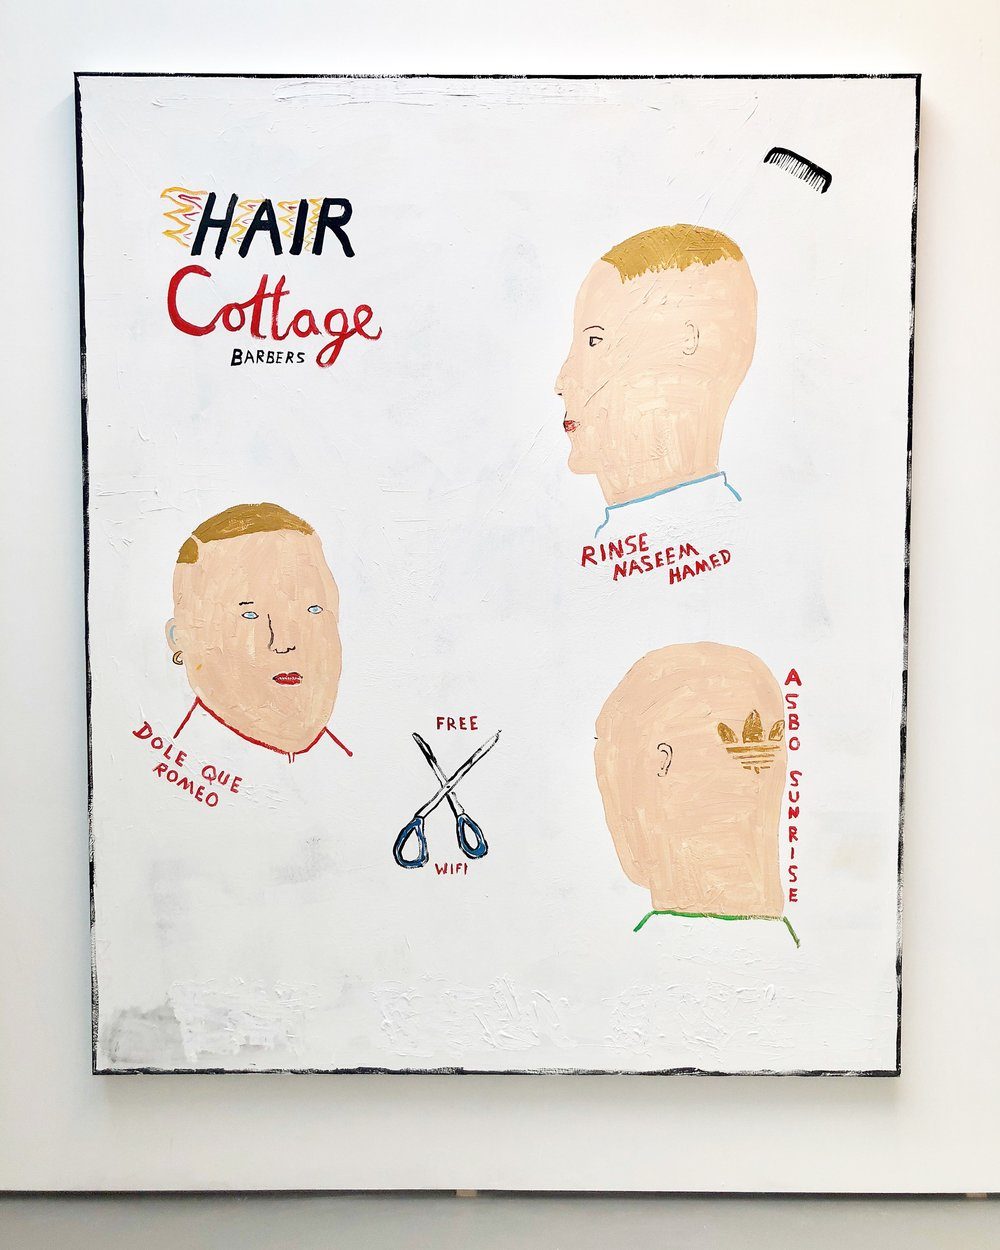 Richie_Culver_hair_cottage.jpg